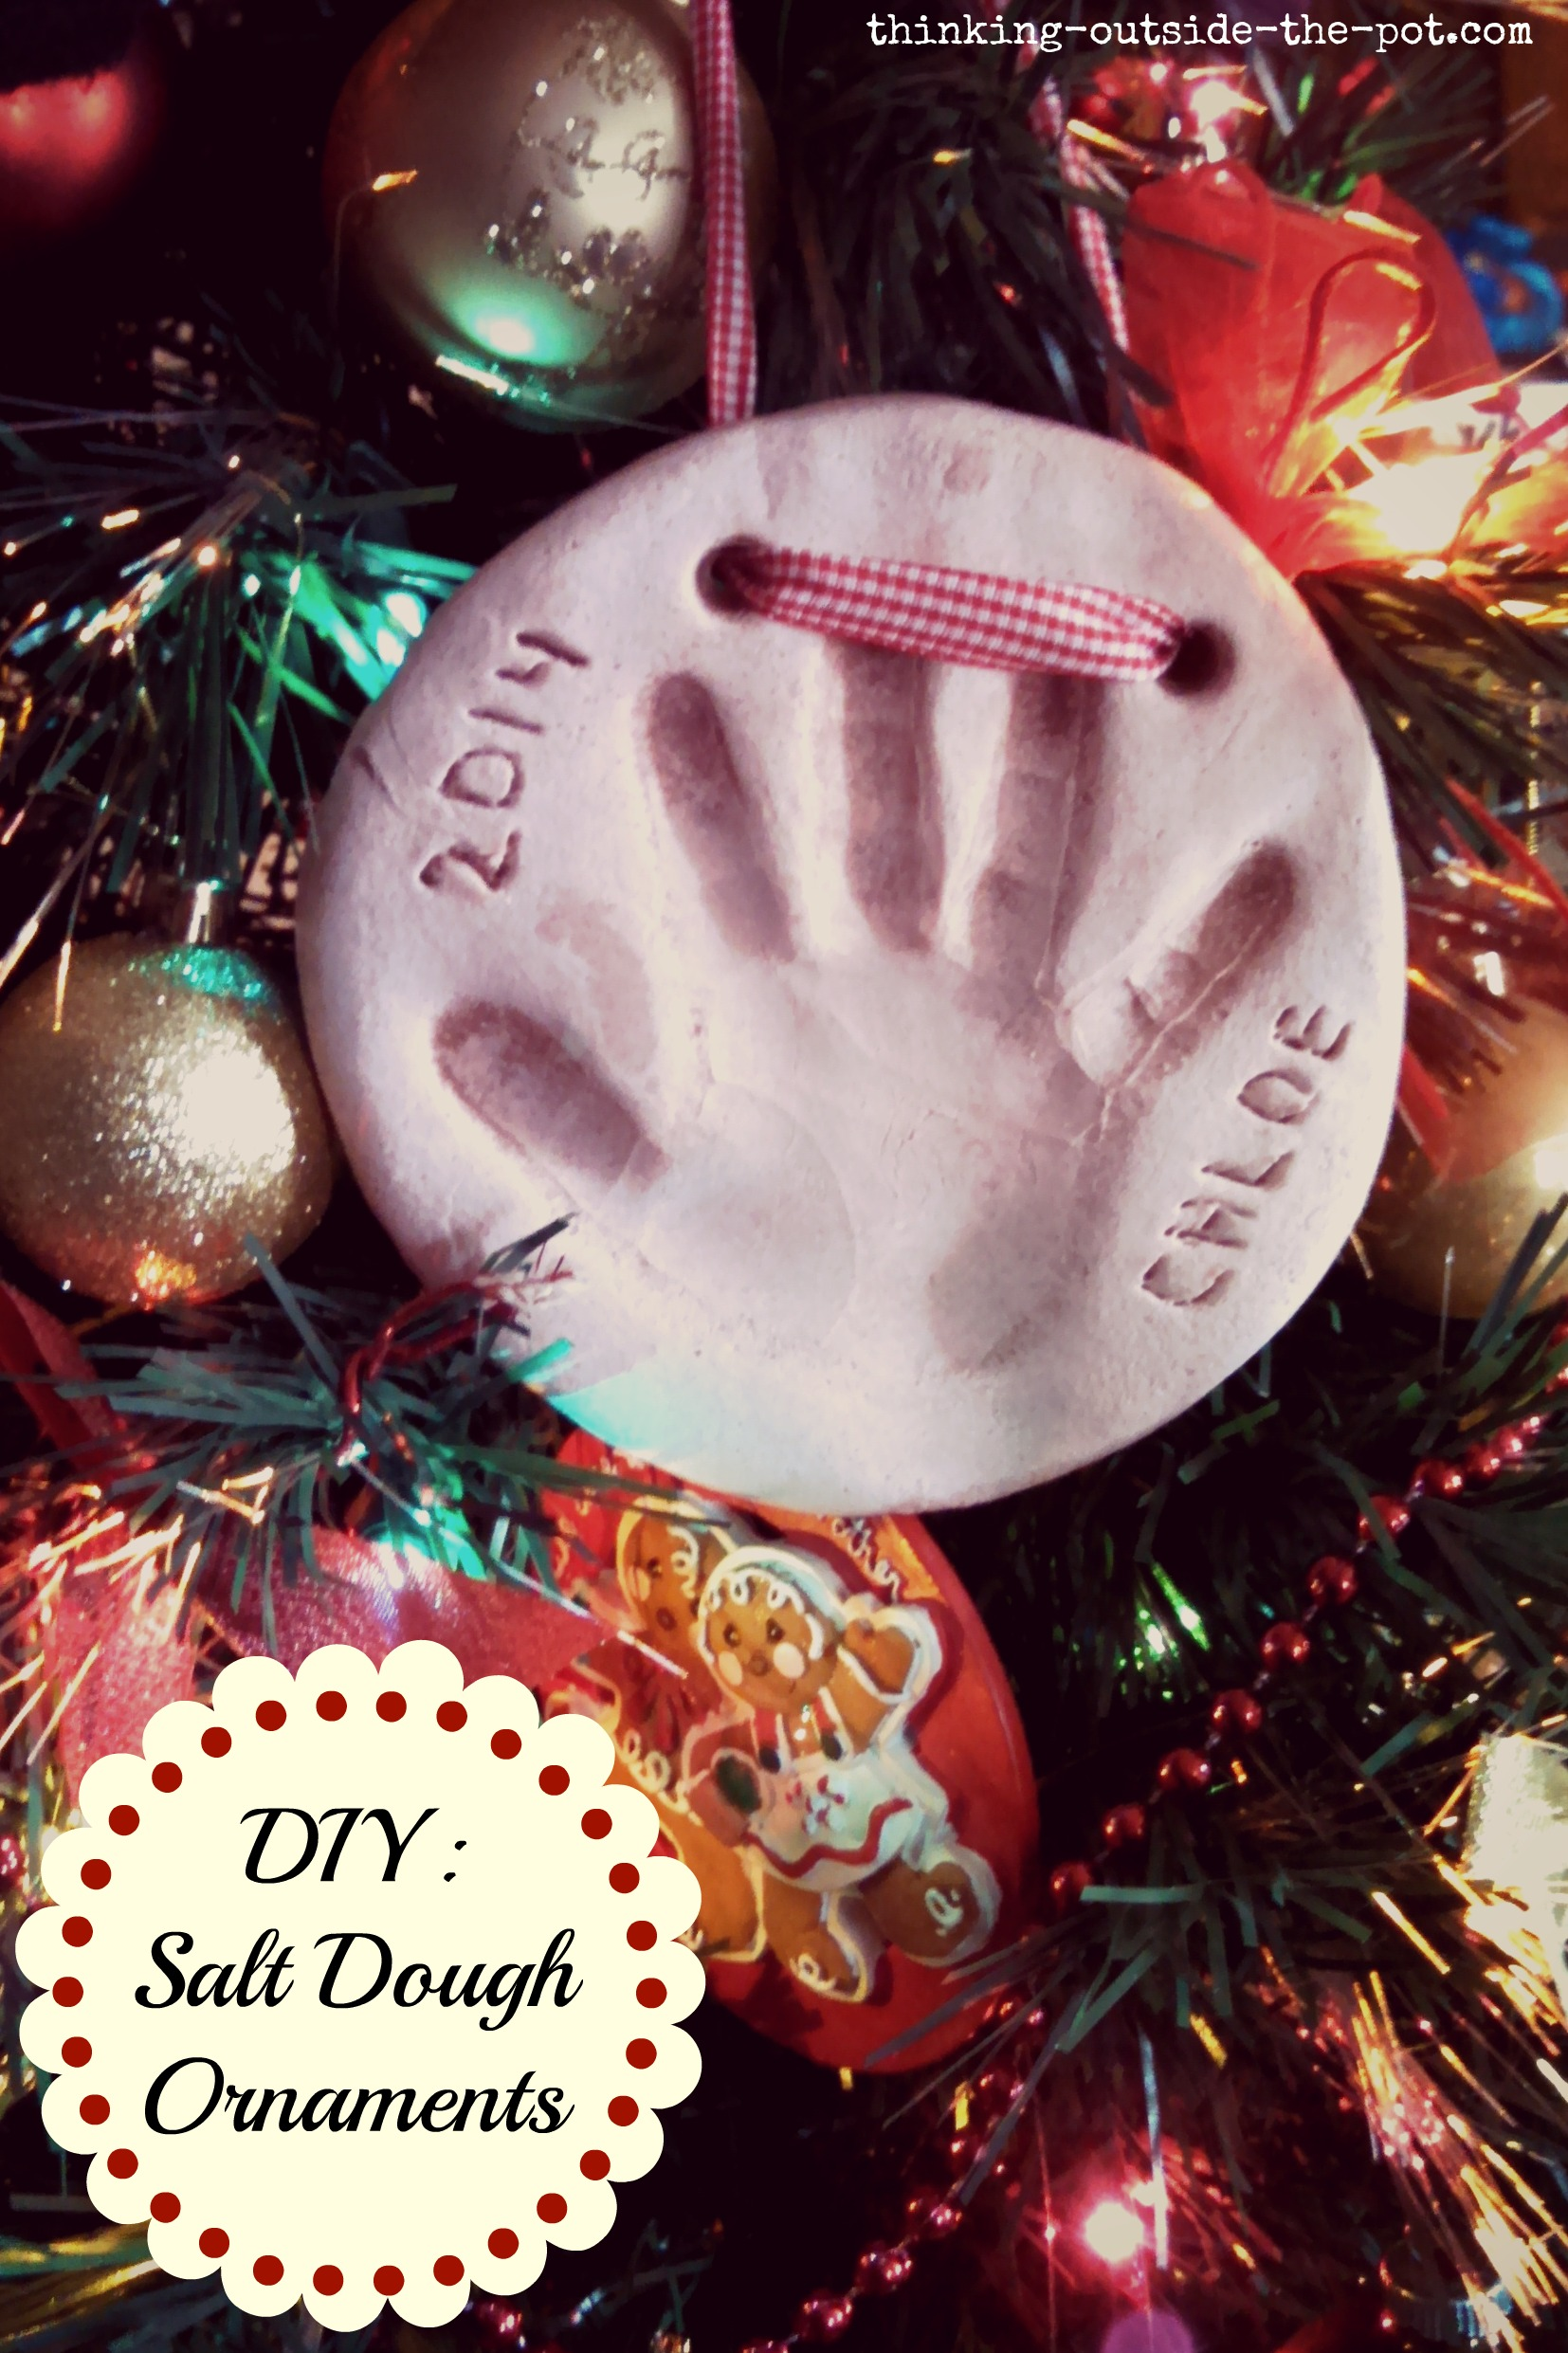 Diy: Salt Dough Ornaments - Thinking Outside The Pot